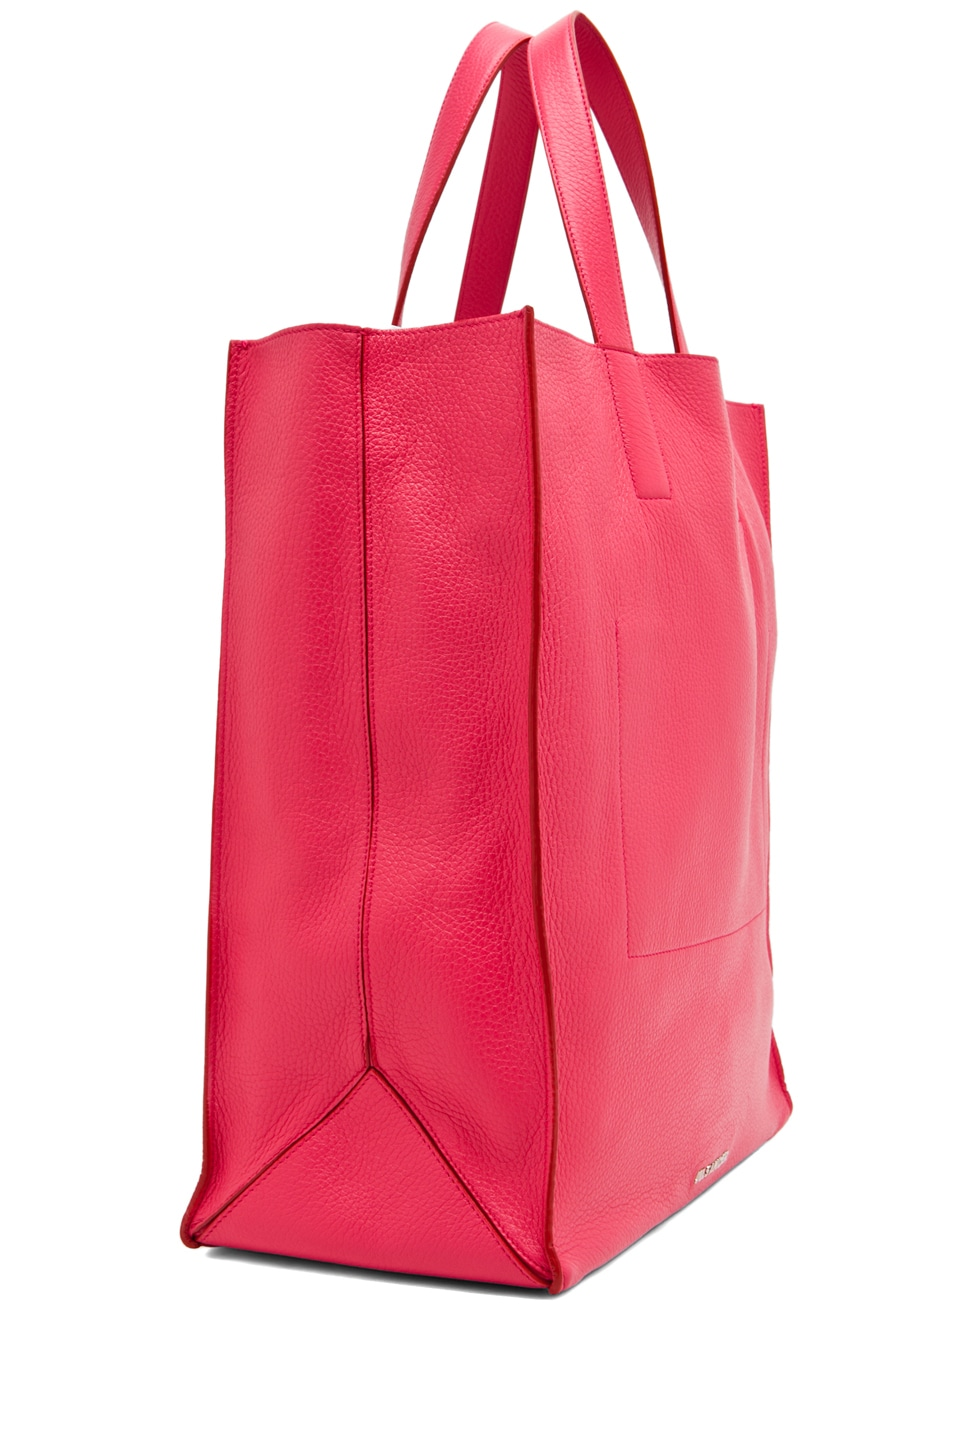 Image 3 of Jil Sander Paper Bag Tote in Lipstick